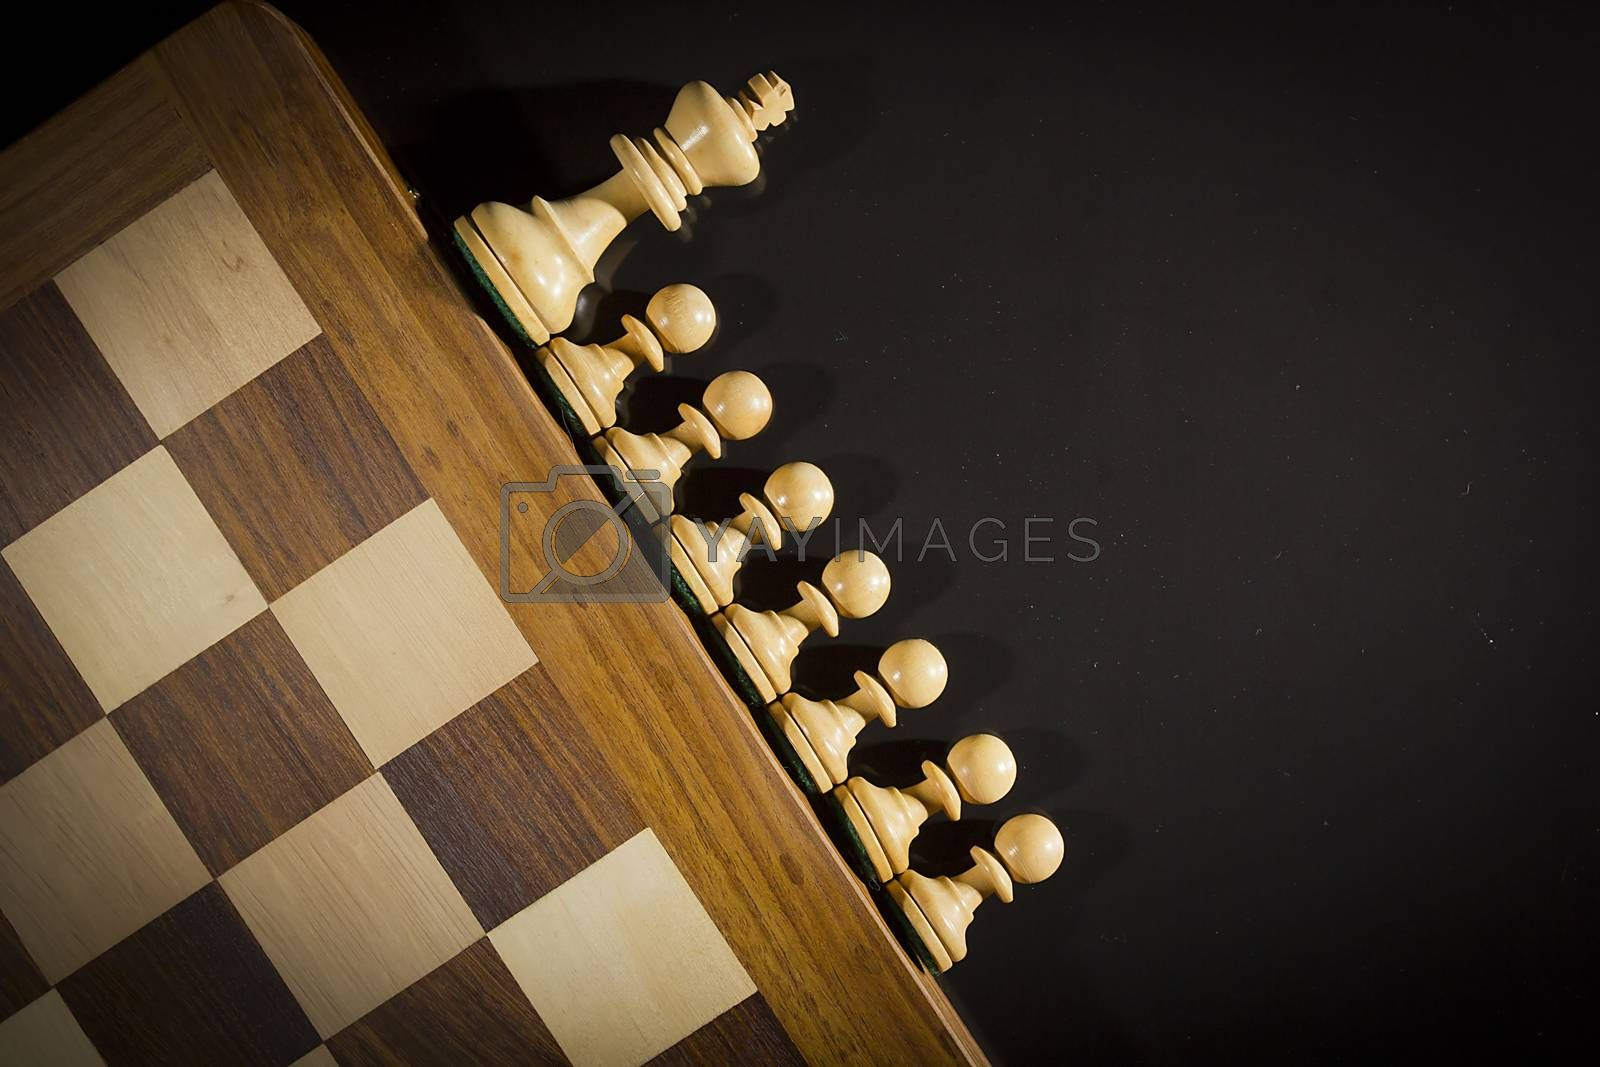 Wooden chess pieces and chess board on black background